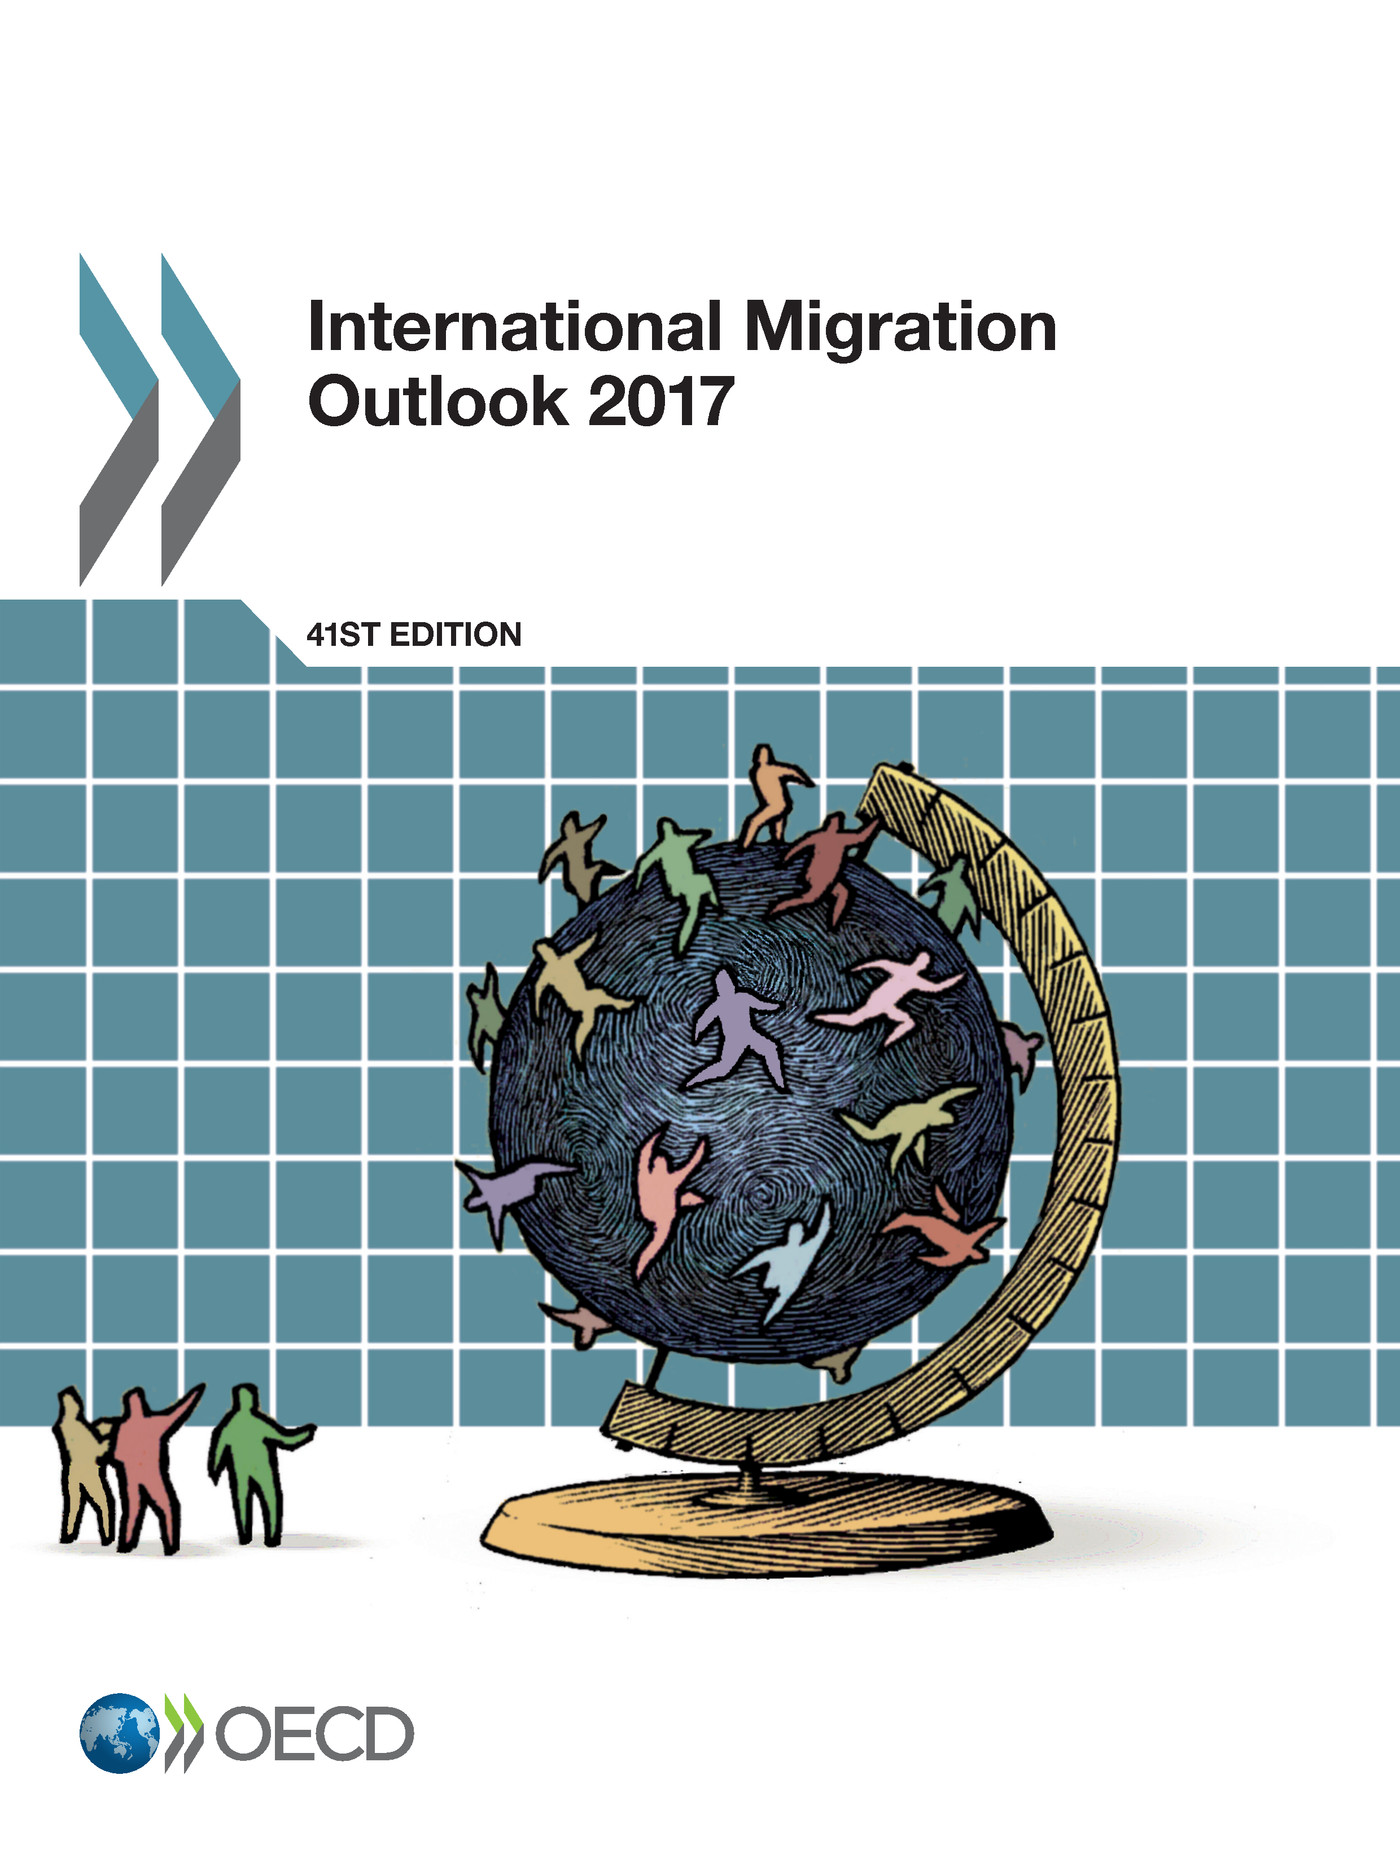 International Migration Outlook 2017 De  Collectif - OCDE / OECD